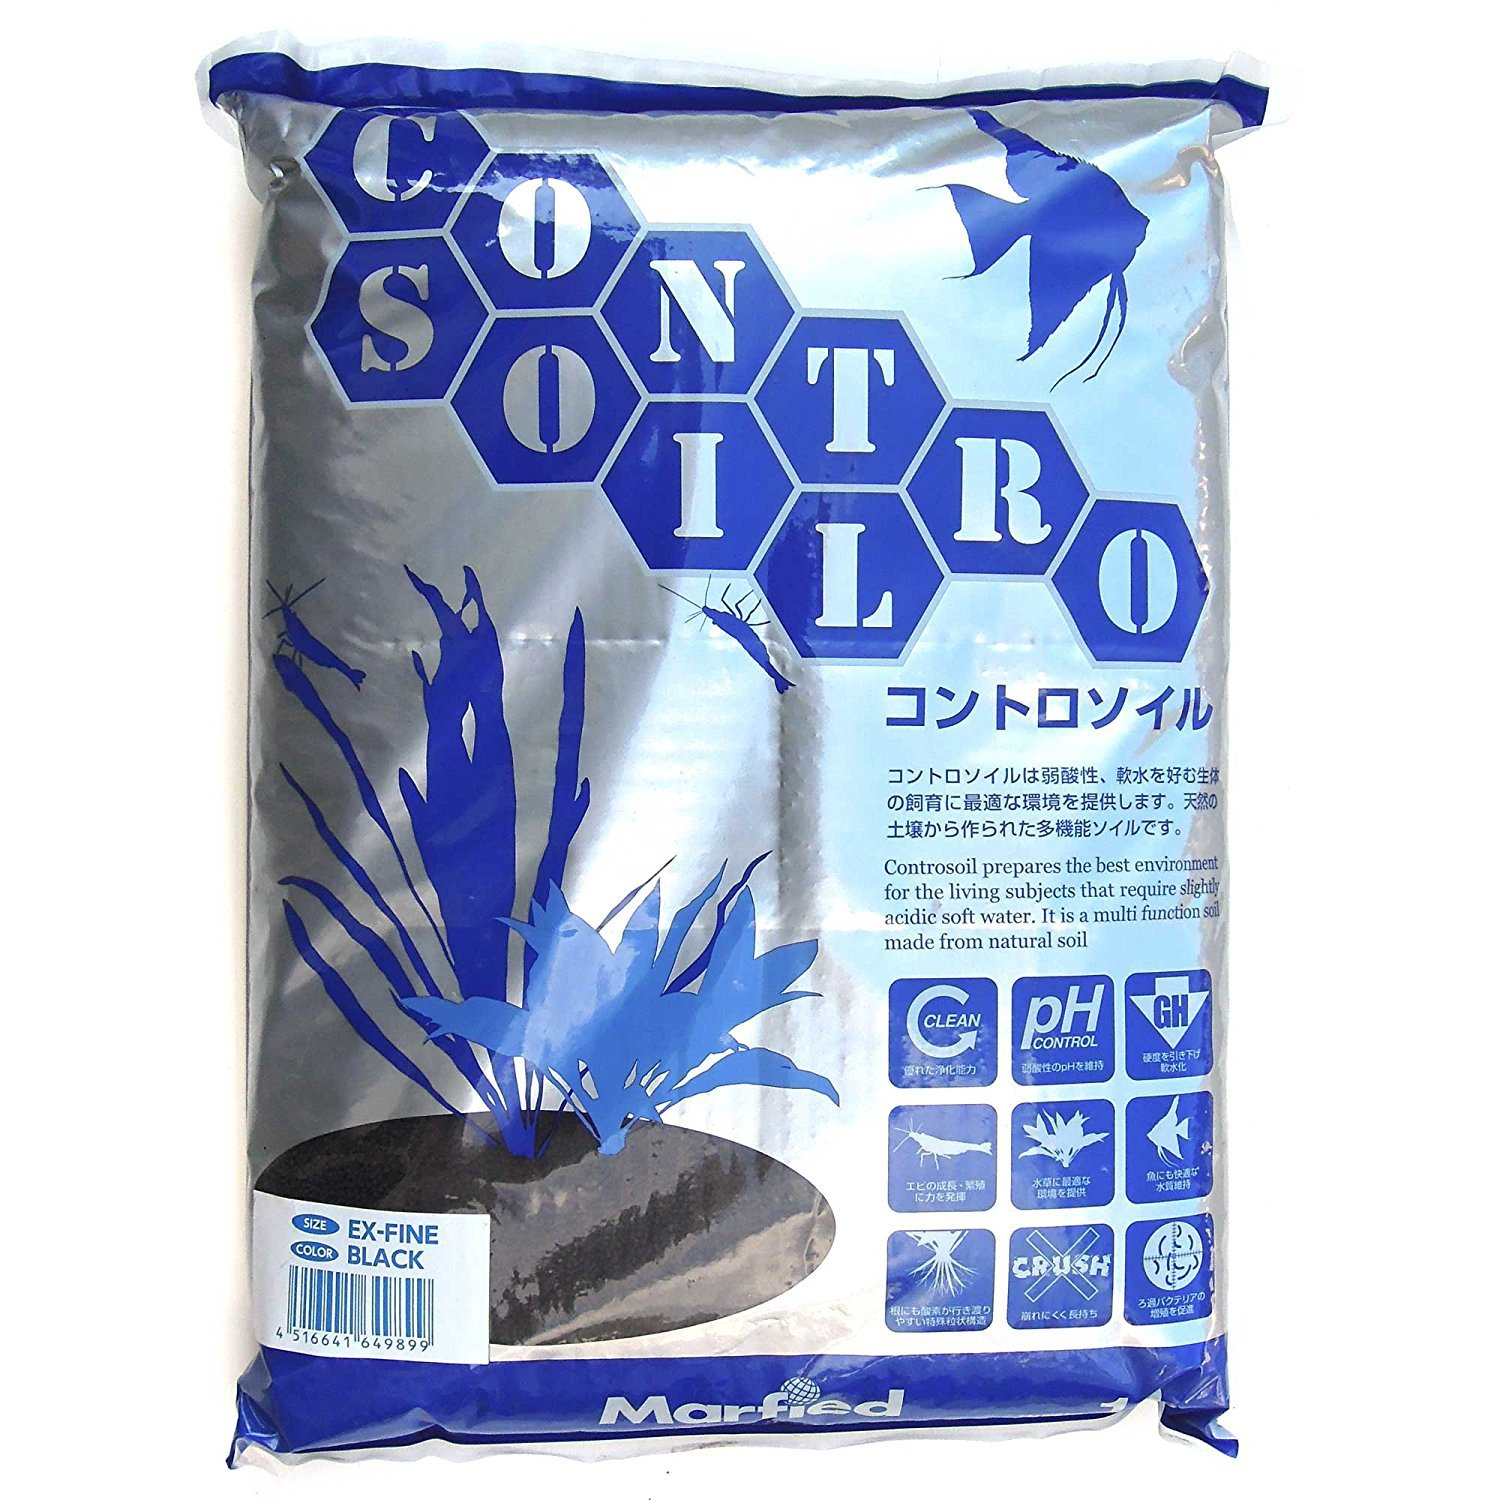 Fish aquarium verna goa - Wild Aquarium Fish Tank Live Plant Contro Soil 200gm